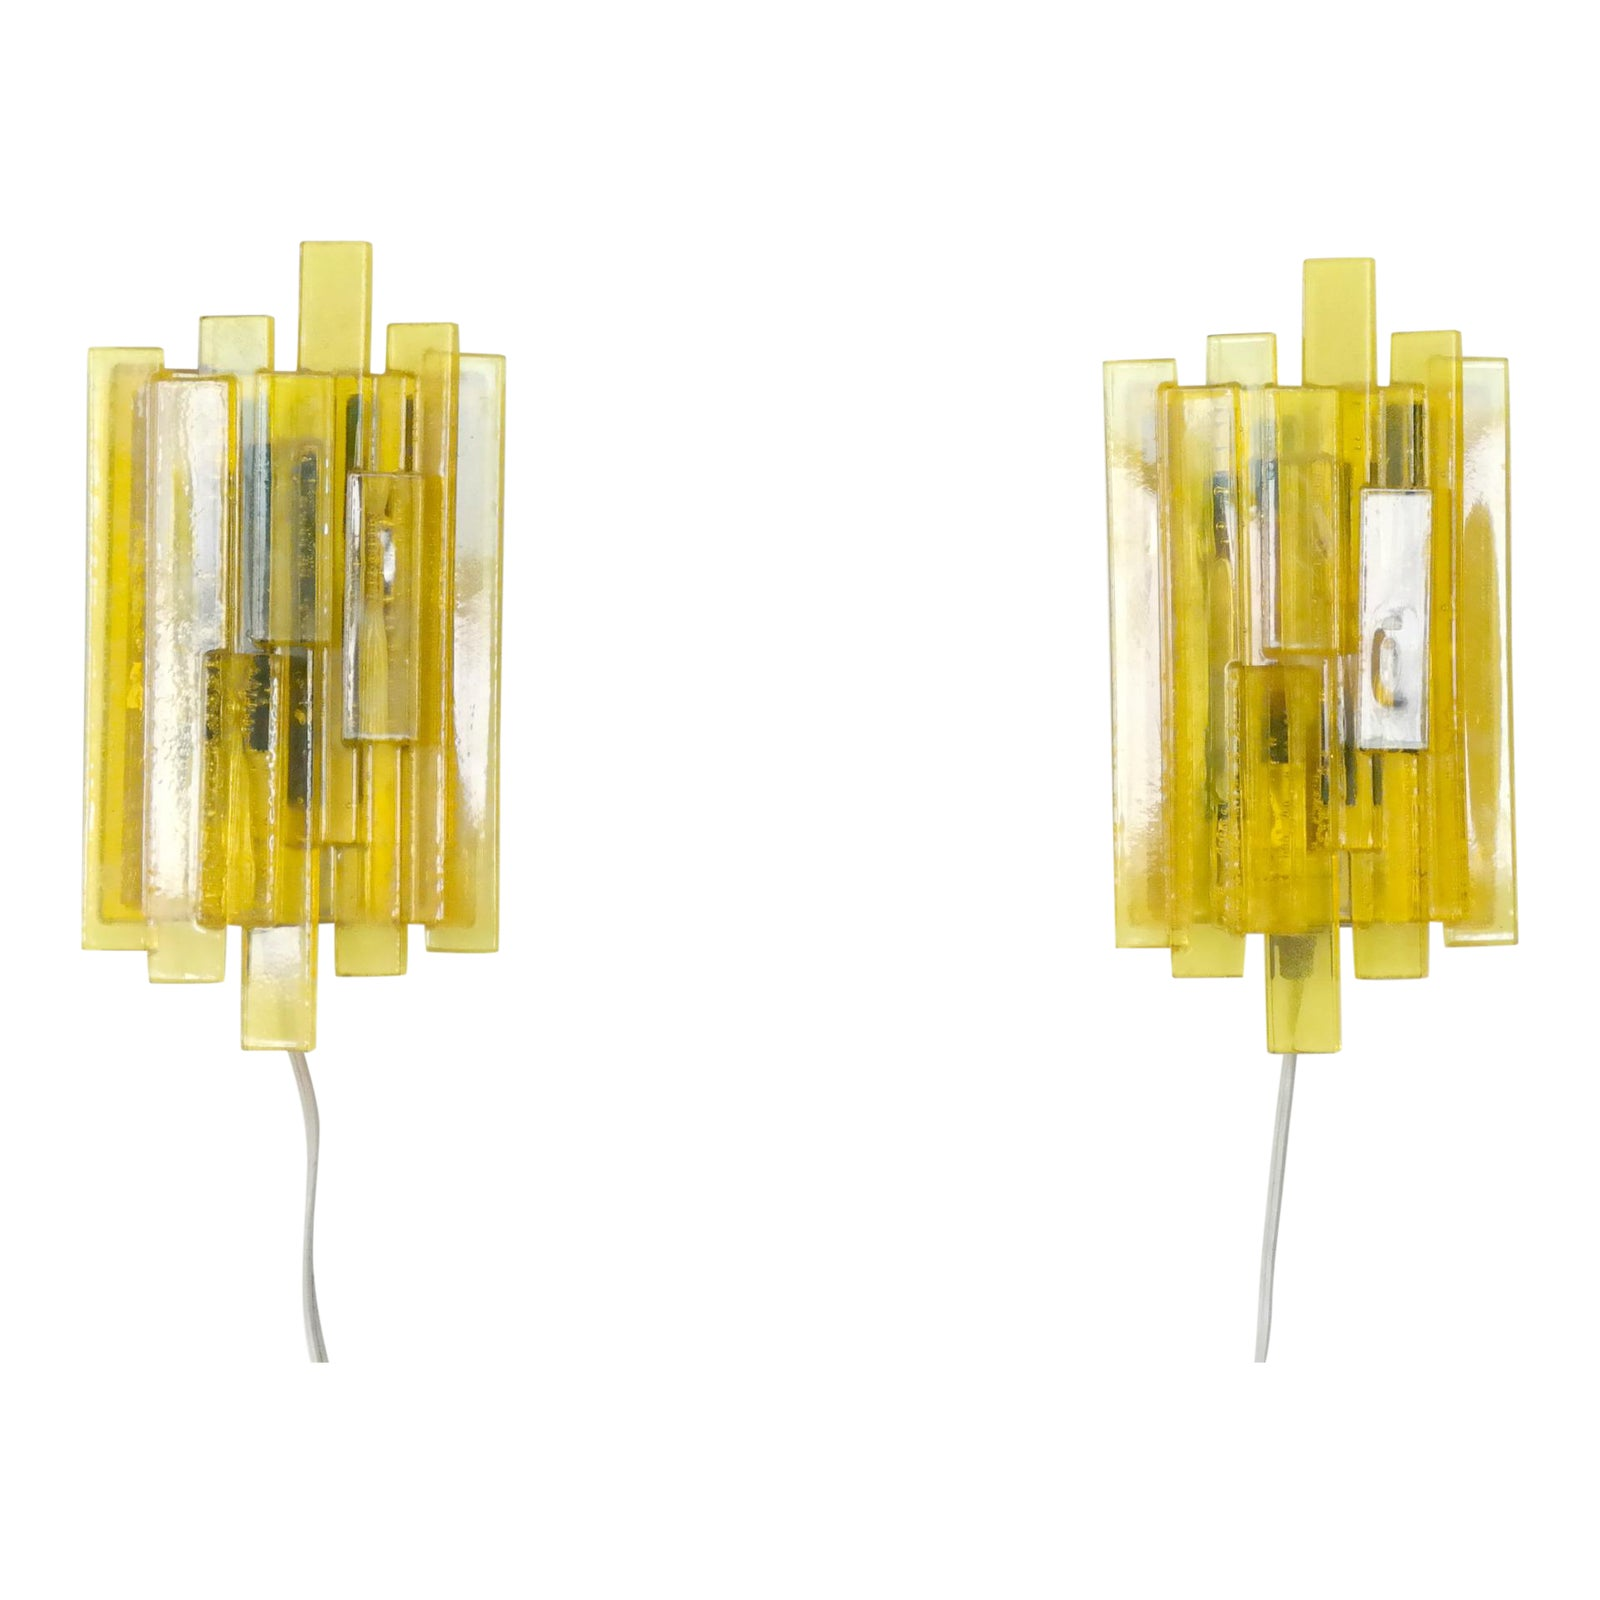 Danish Mid Century Space Age Yellow Acrylic Wall Sconces By Claus Bolby A Pair The Transistor In Of Electronics Chairish